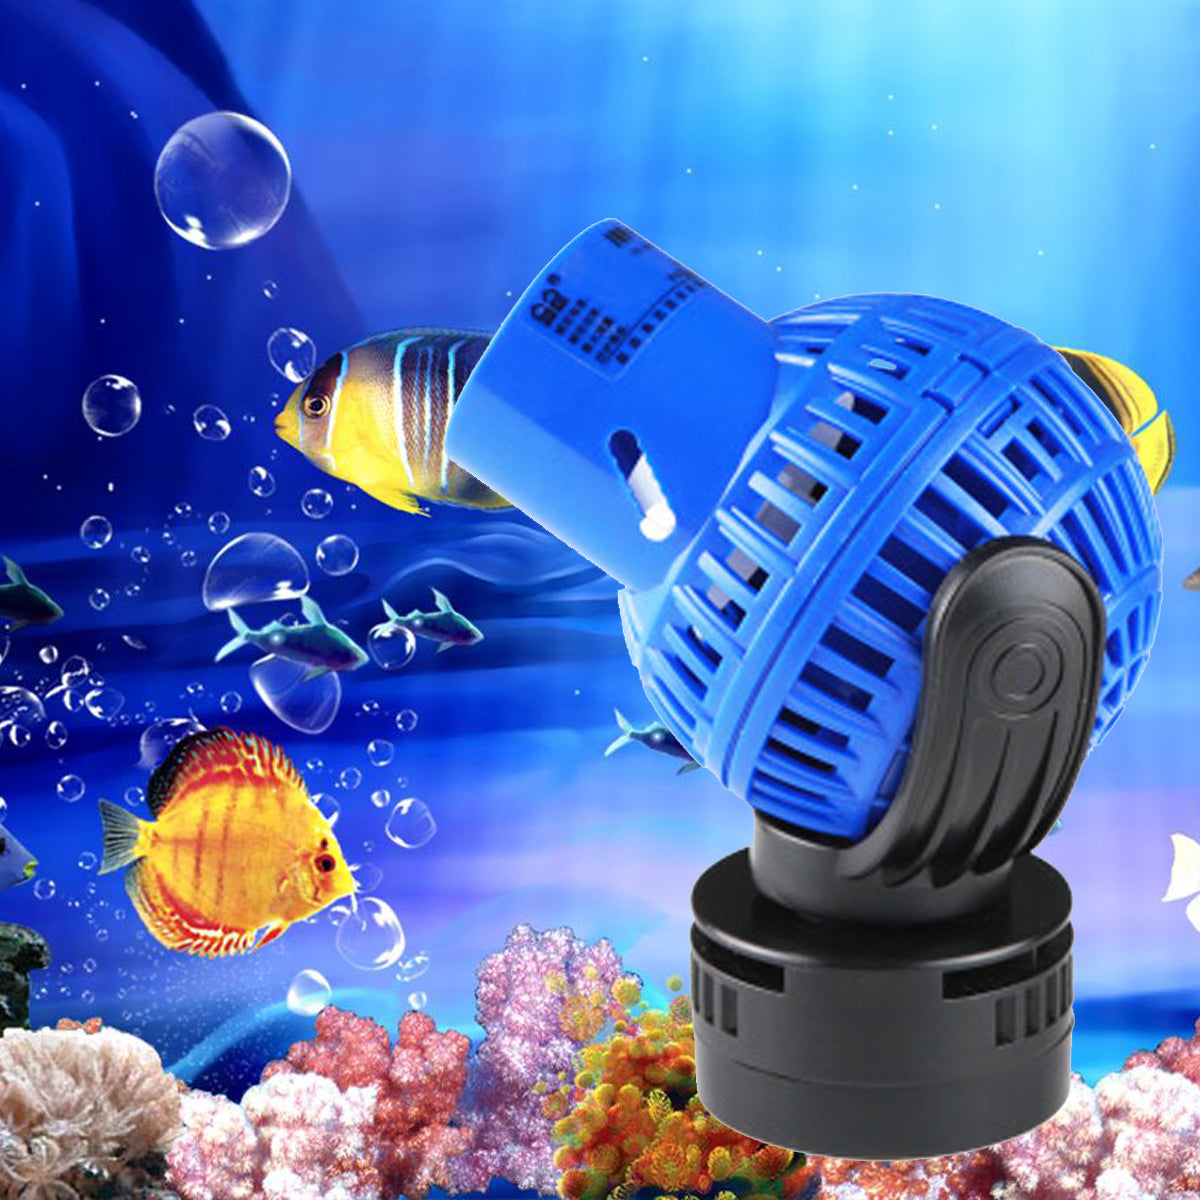 4000-10000L/H Aquarium Fish Tank 360 Water Wave Maker Pump Powerhead Magnet Base